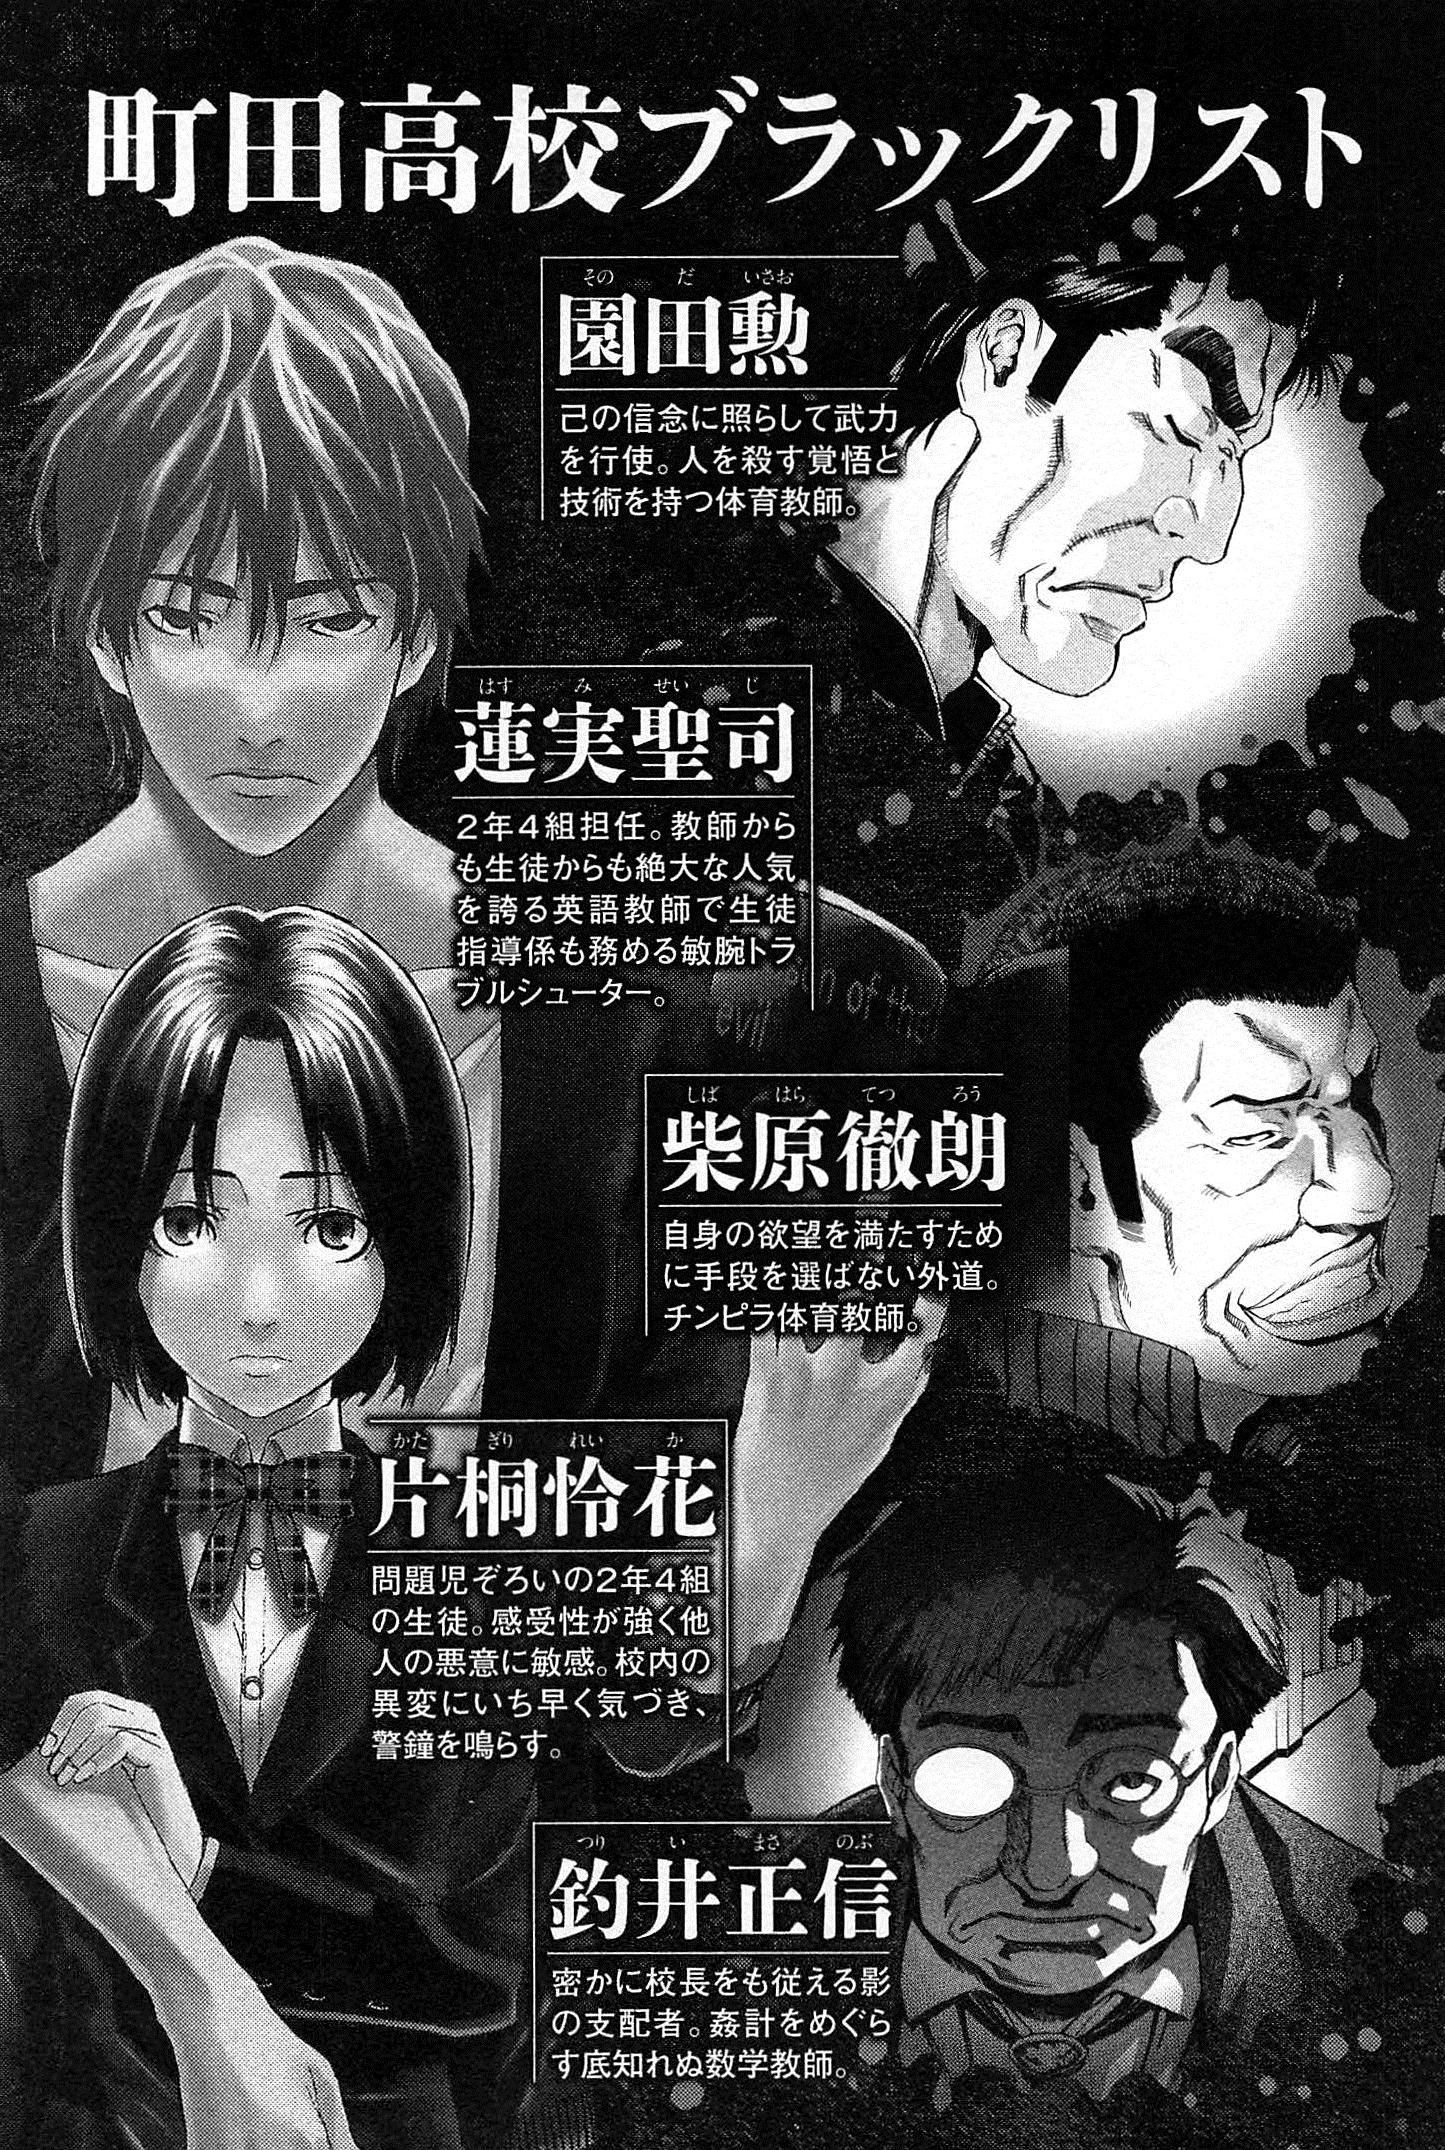 http://c5.ninemanga.com/es_manga/pic2/3/19523/524169/69620311e27d6437b226e8925801d6b2.jpg Page 6